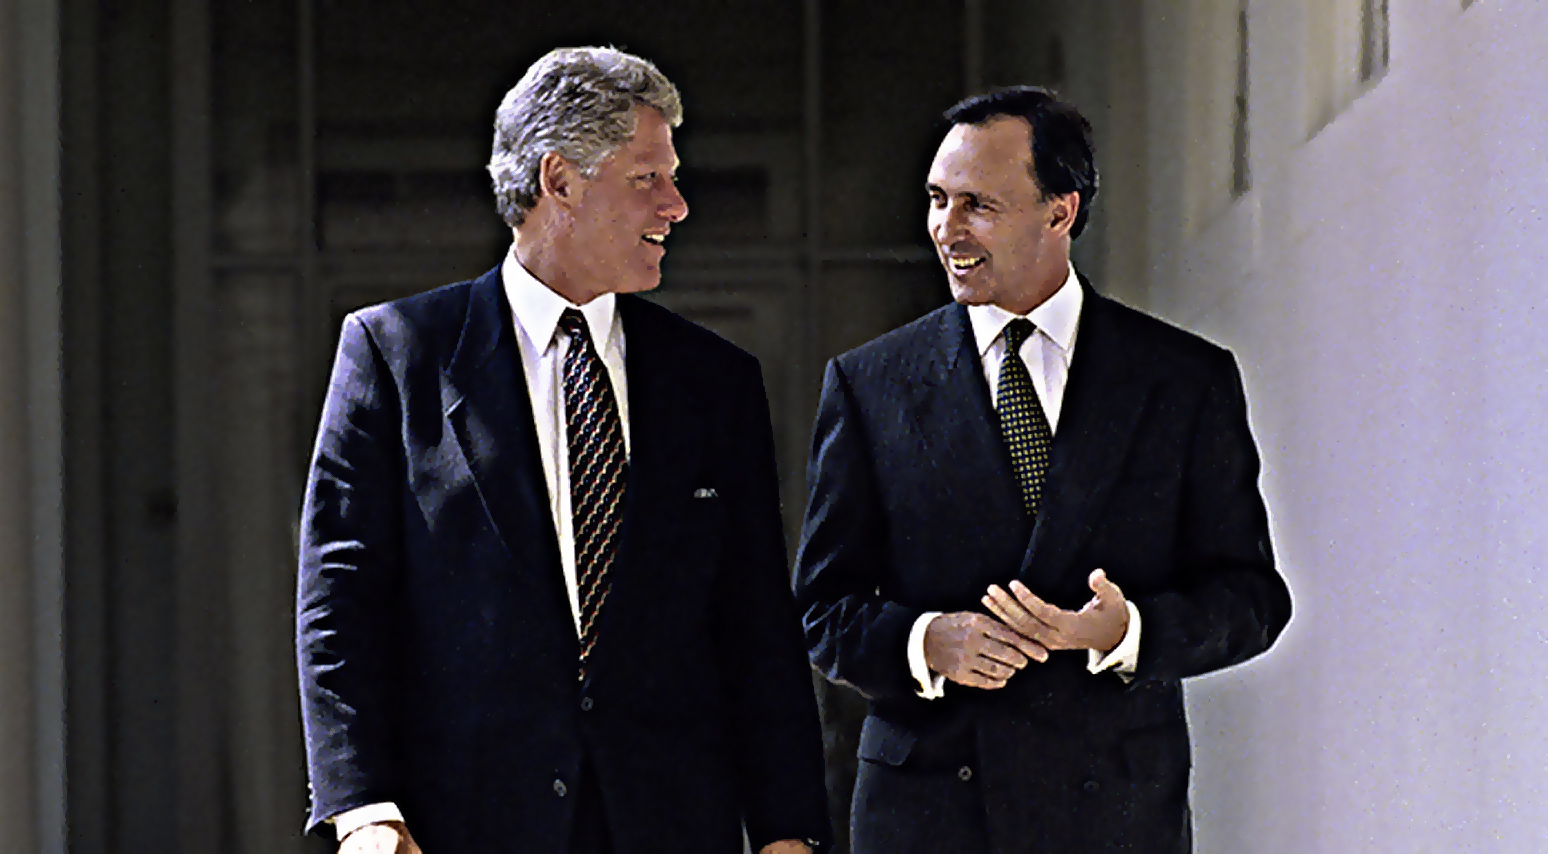 Prime Minister Paul Keating visits the White House in 1993, after his November 1992 reform (National Archives of Australia)